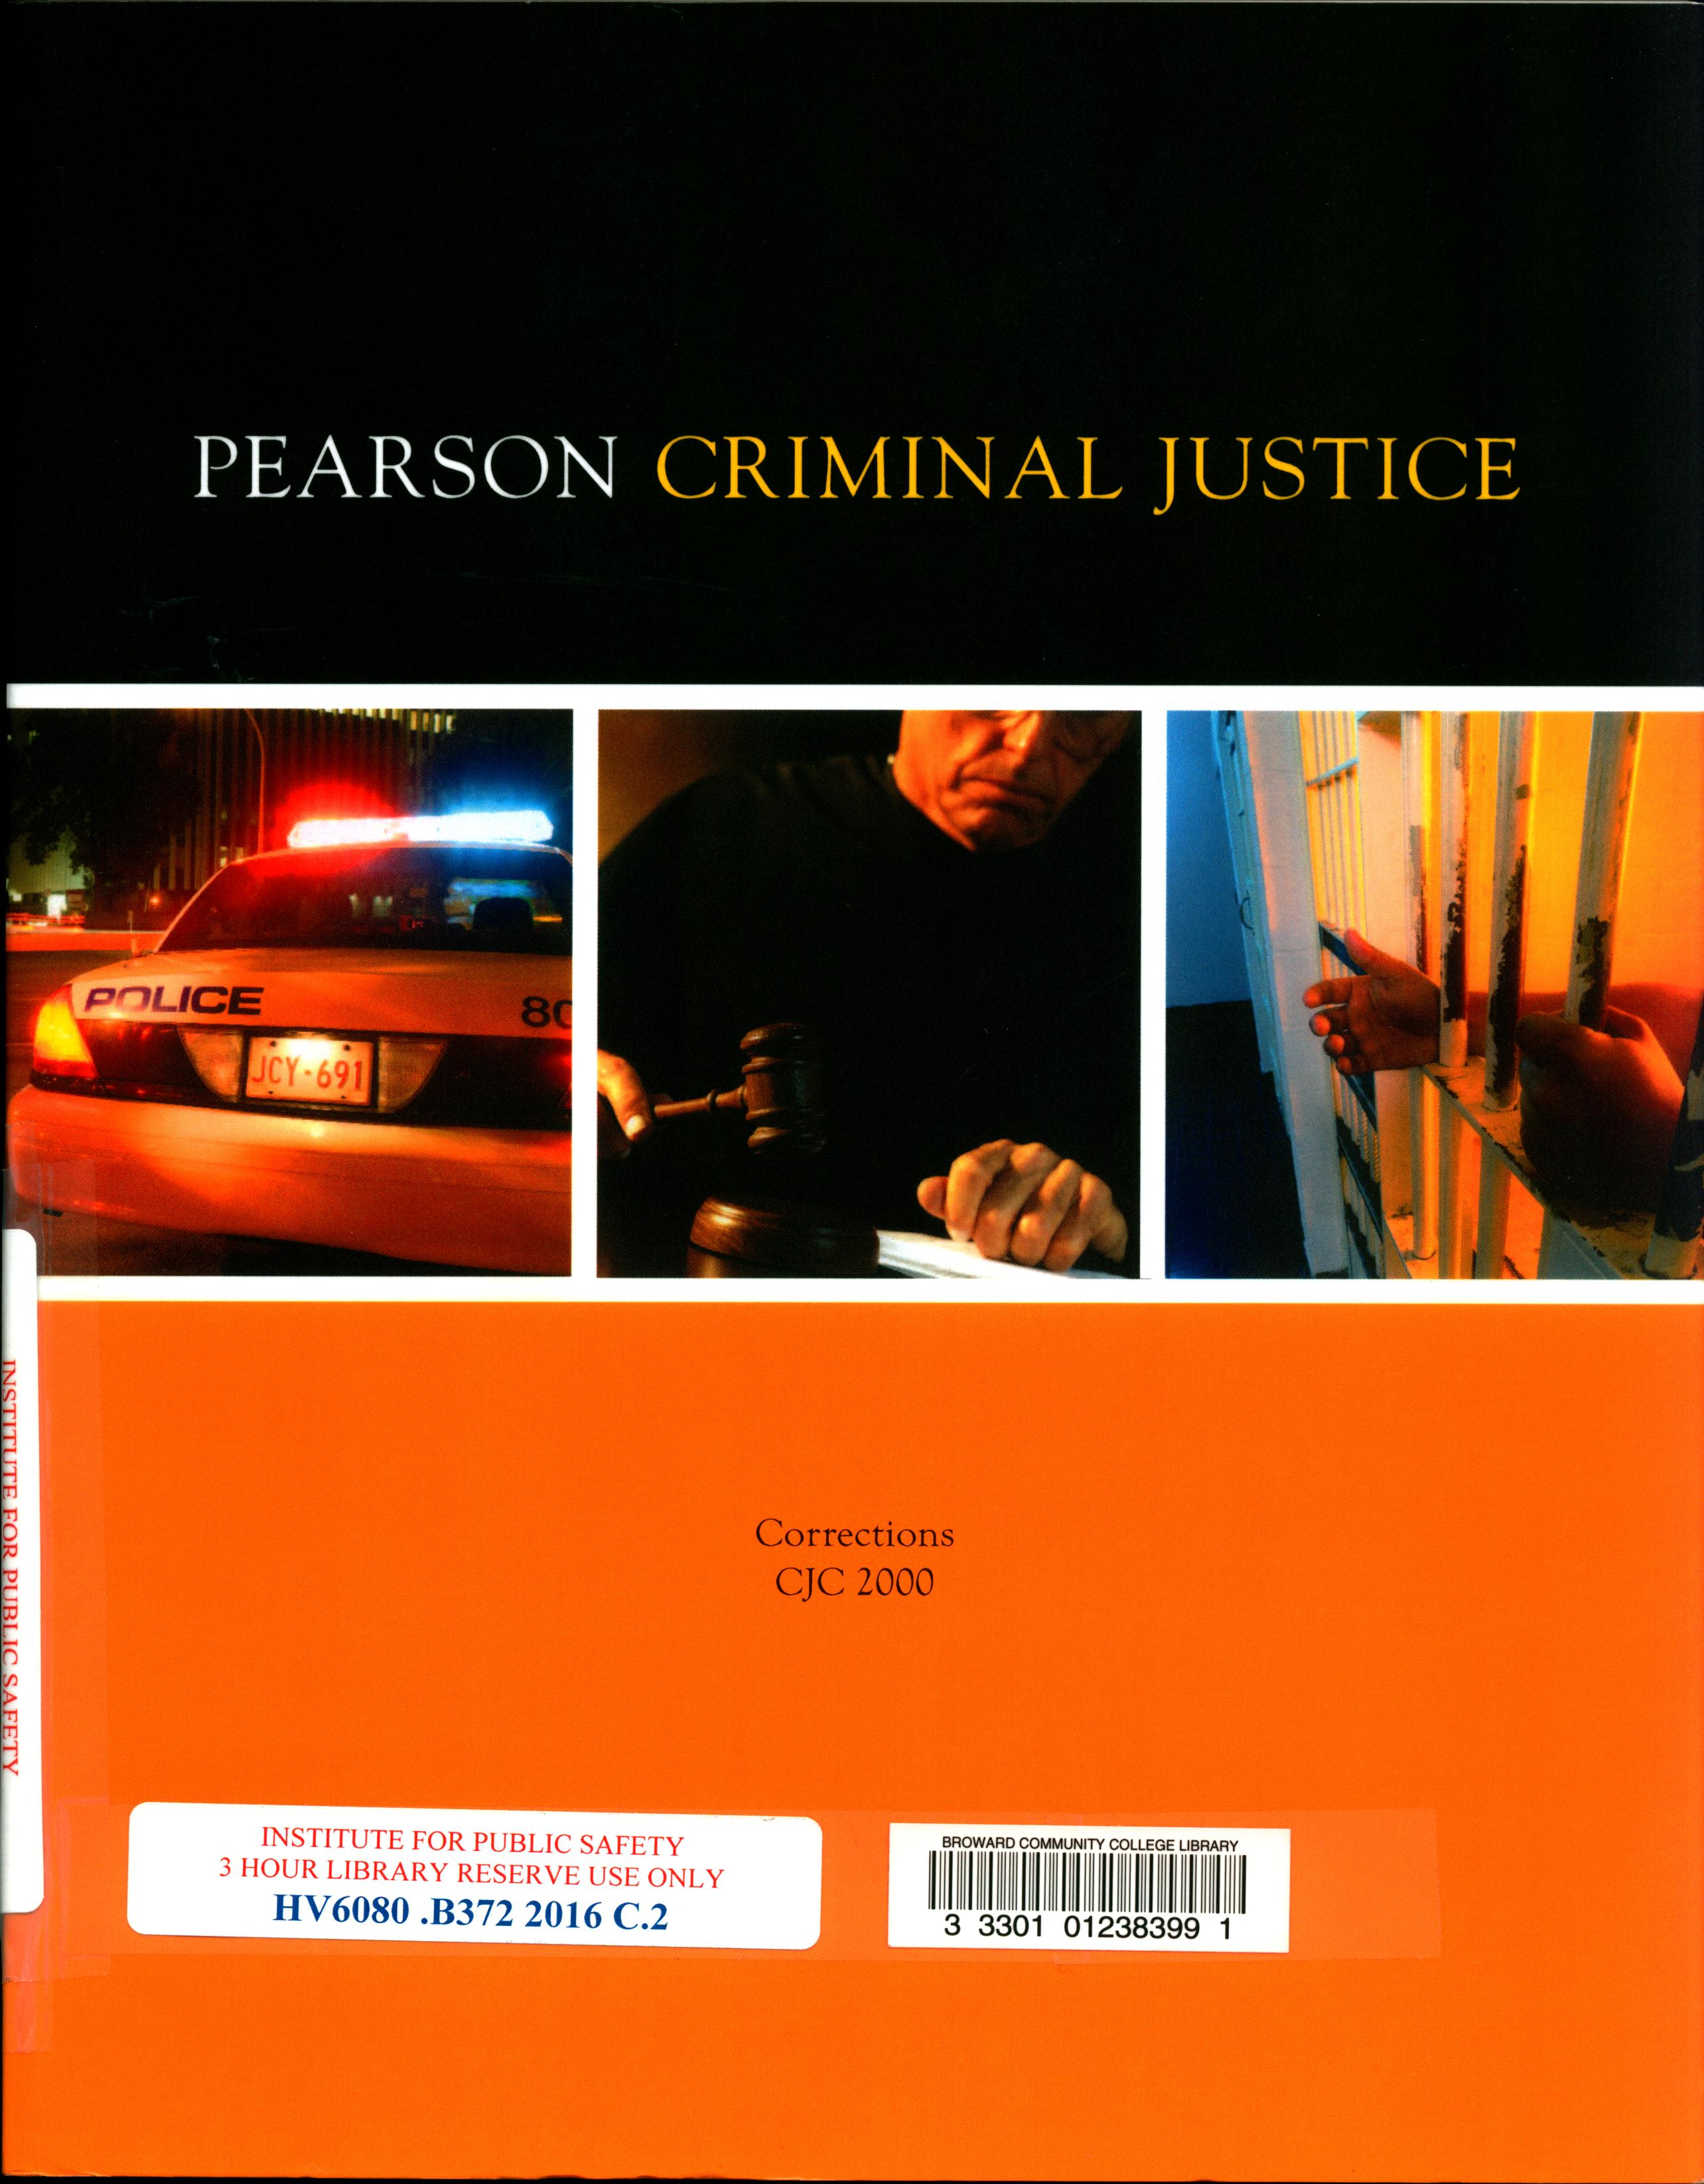 criminal justice and corrections Virtually all criminal justice professionals, be they police officers, judges, prosecutors, defense lawyers, correctional officers, probation officers, or parole officers, need to exercise the use of their discretion at some point or another during the course of their careers.